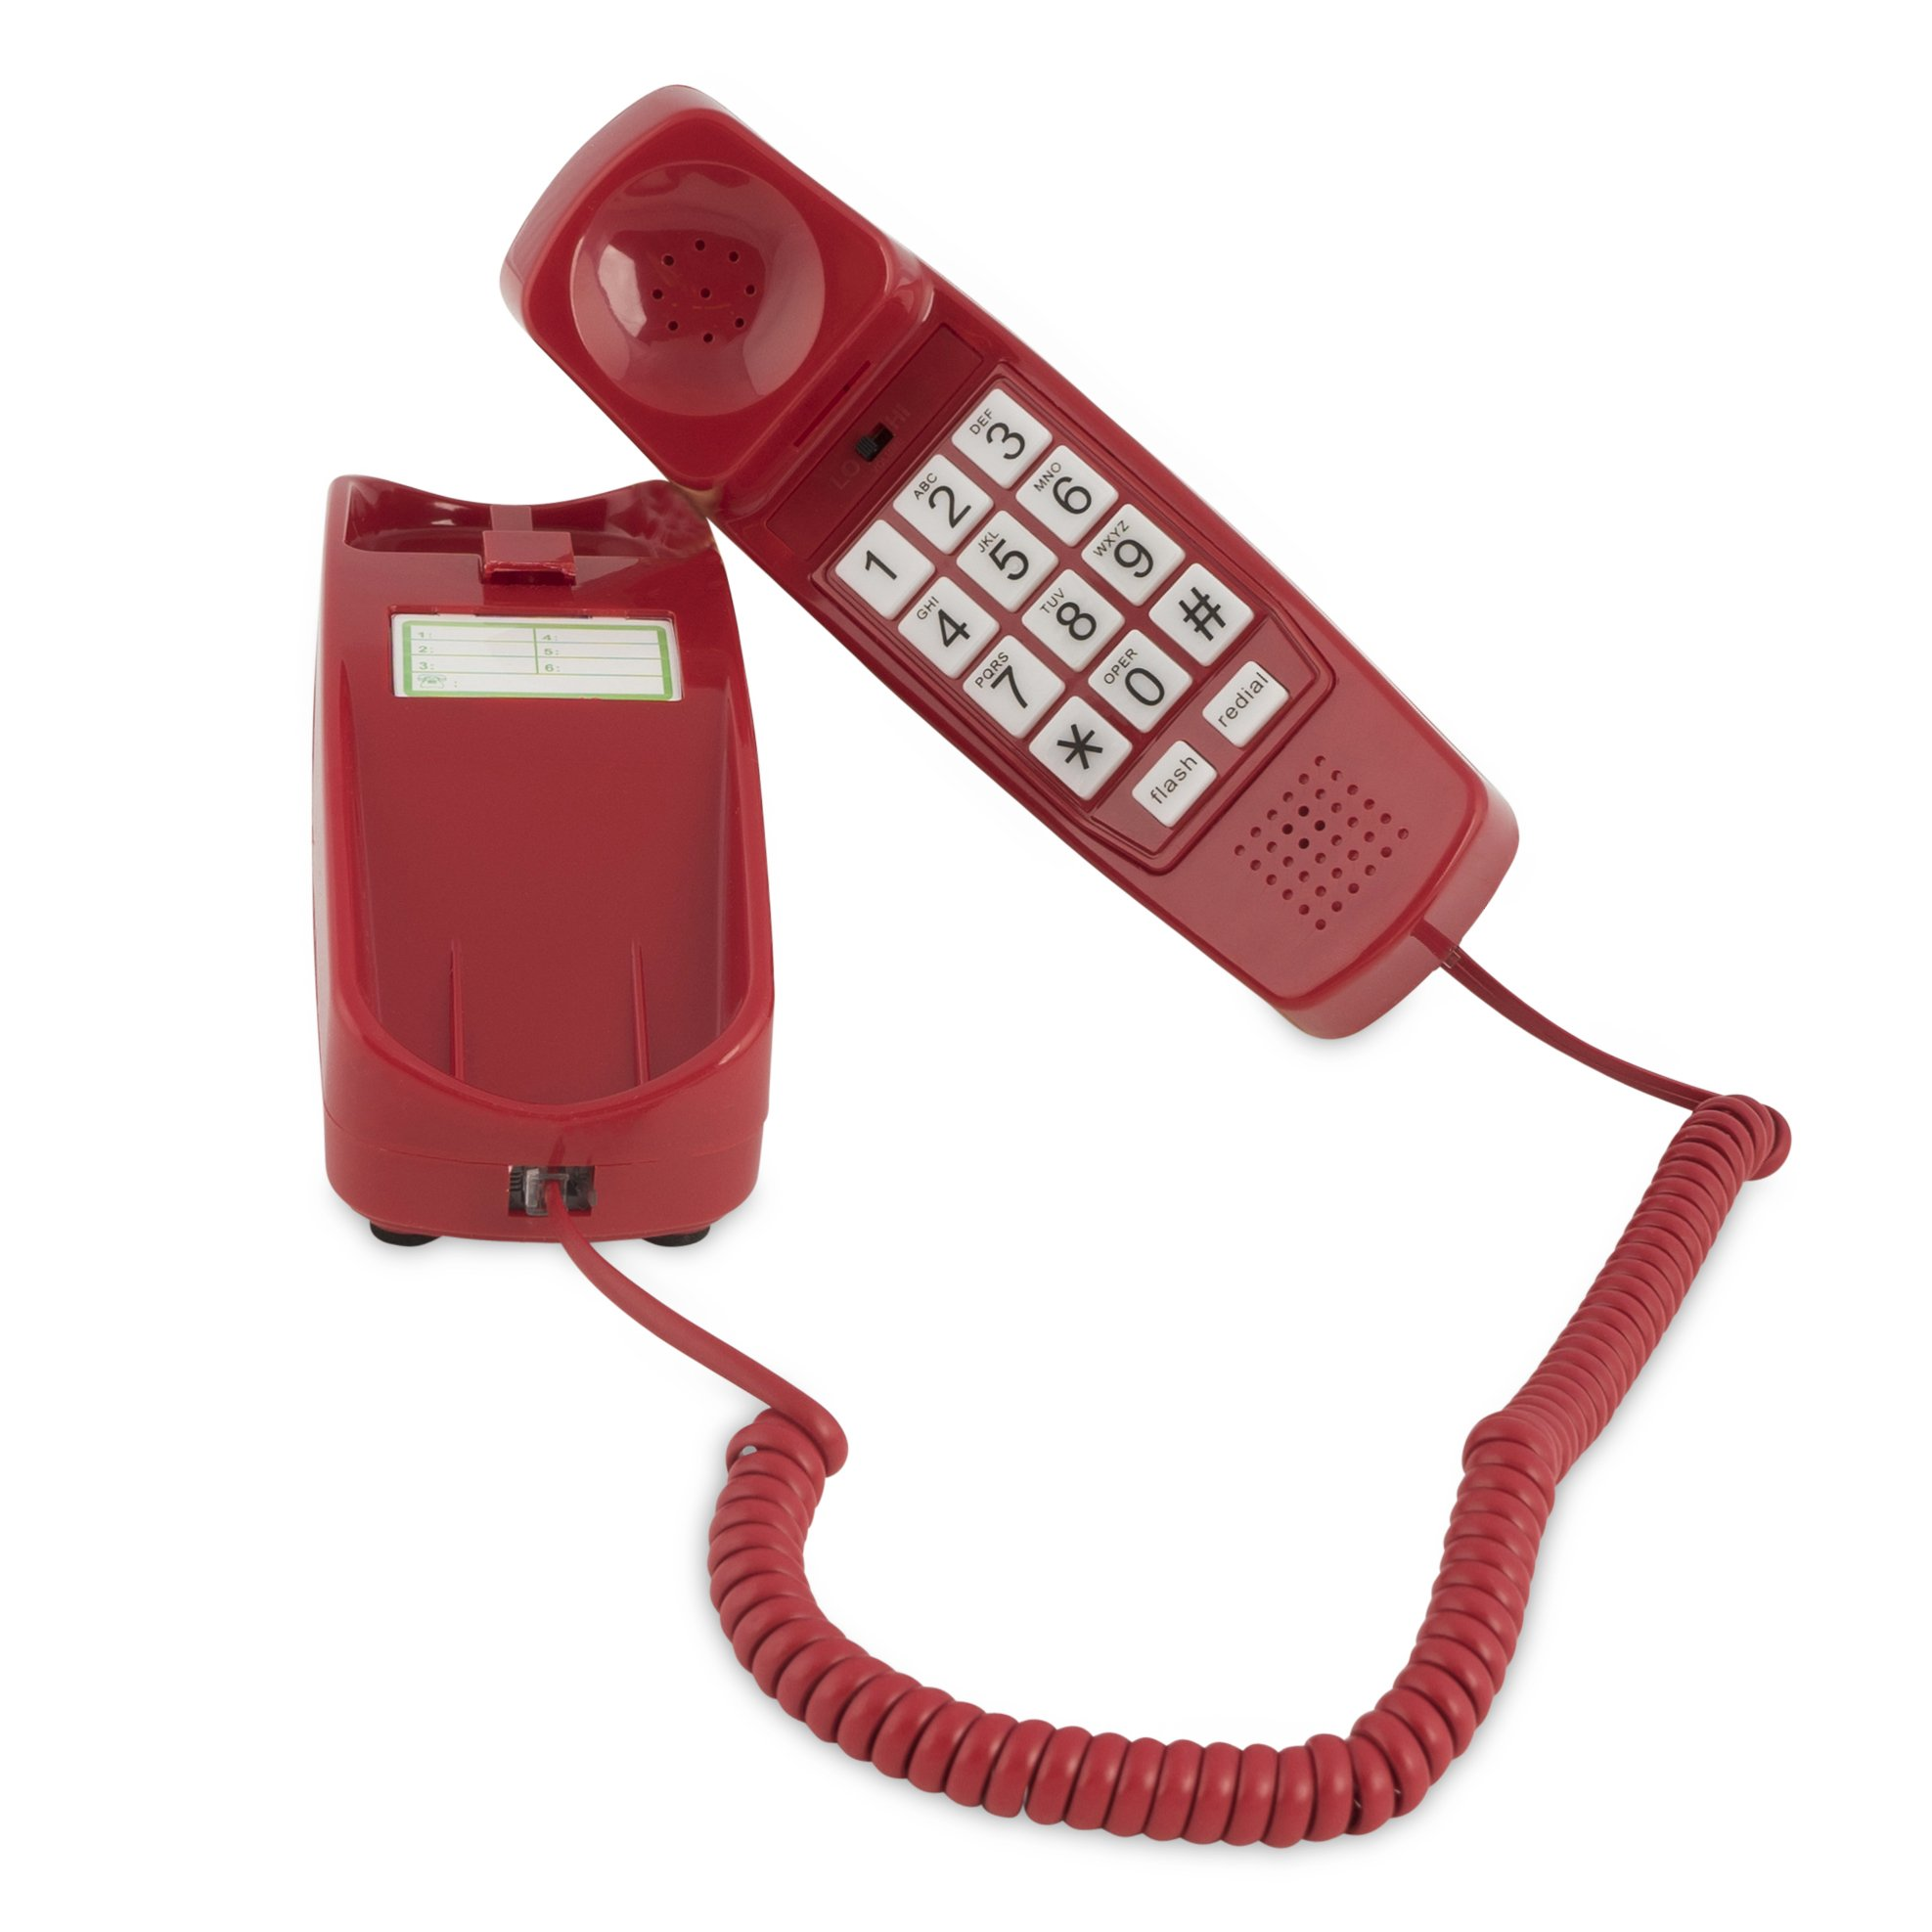 iSoHo, Trimline Corded Phone - Phones For Seniors - Phone for hearing impaired - Crimson Red - Retro Novelty Telephone - An Improved Version of the Princess Phones in 1965 - Style Big Button